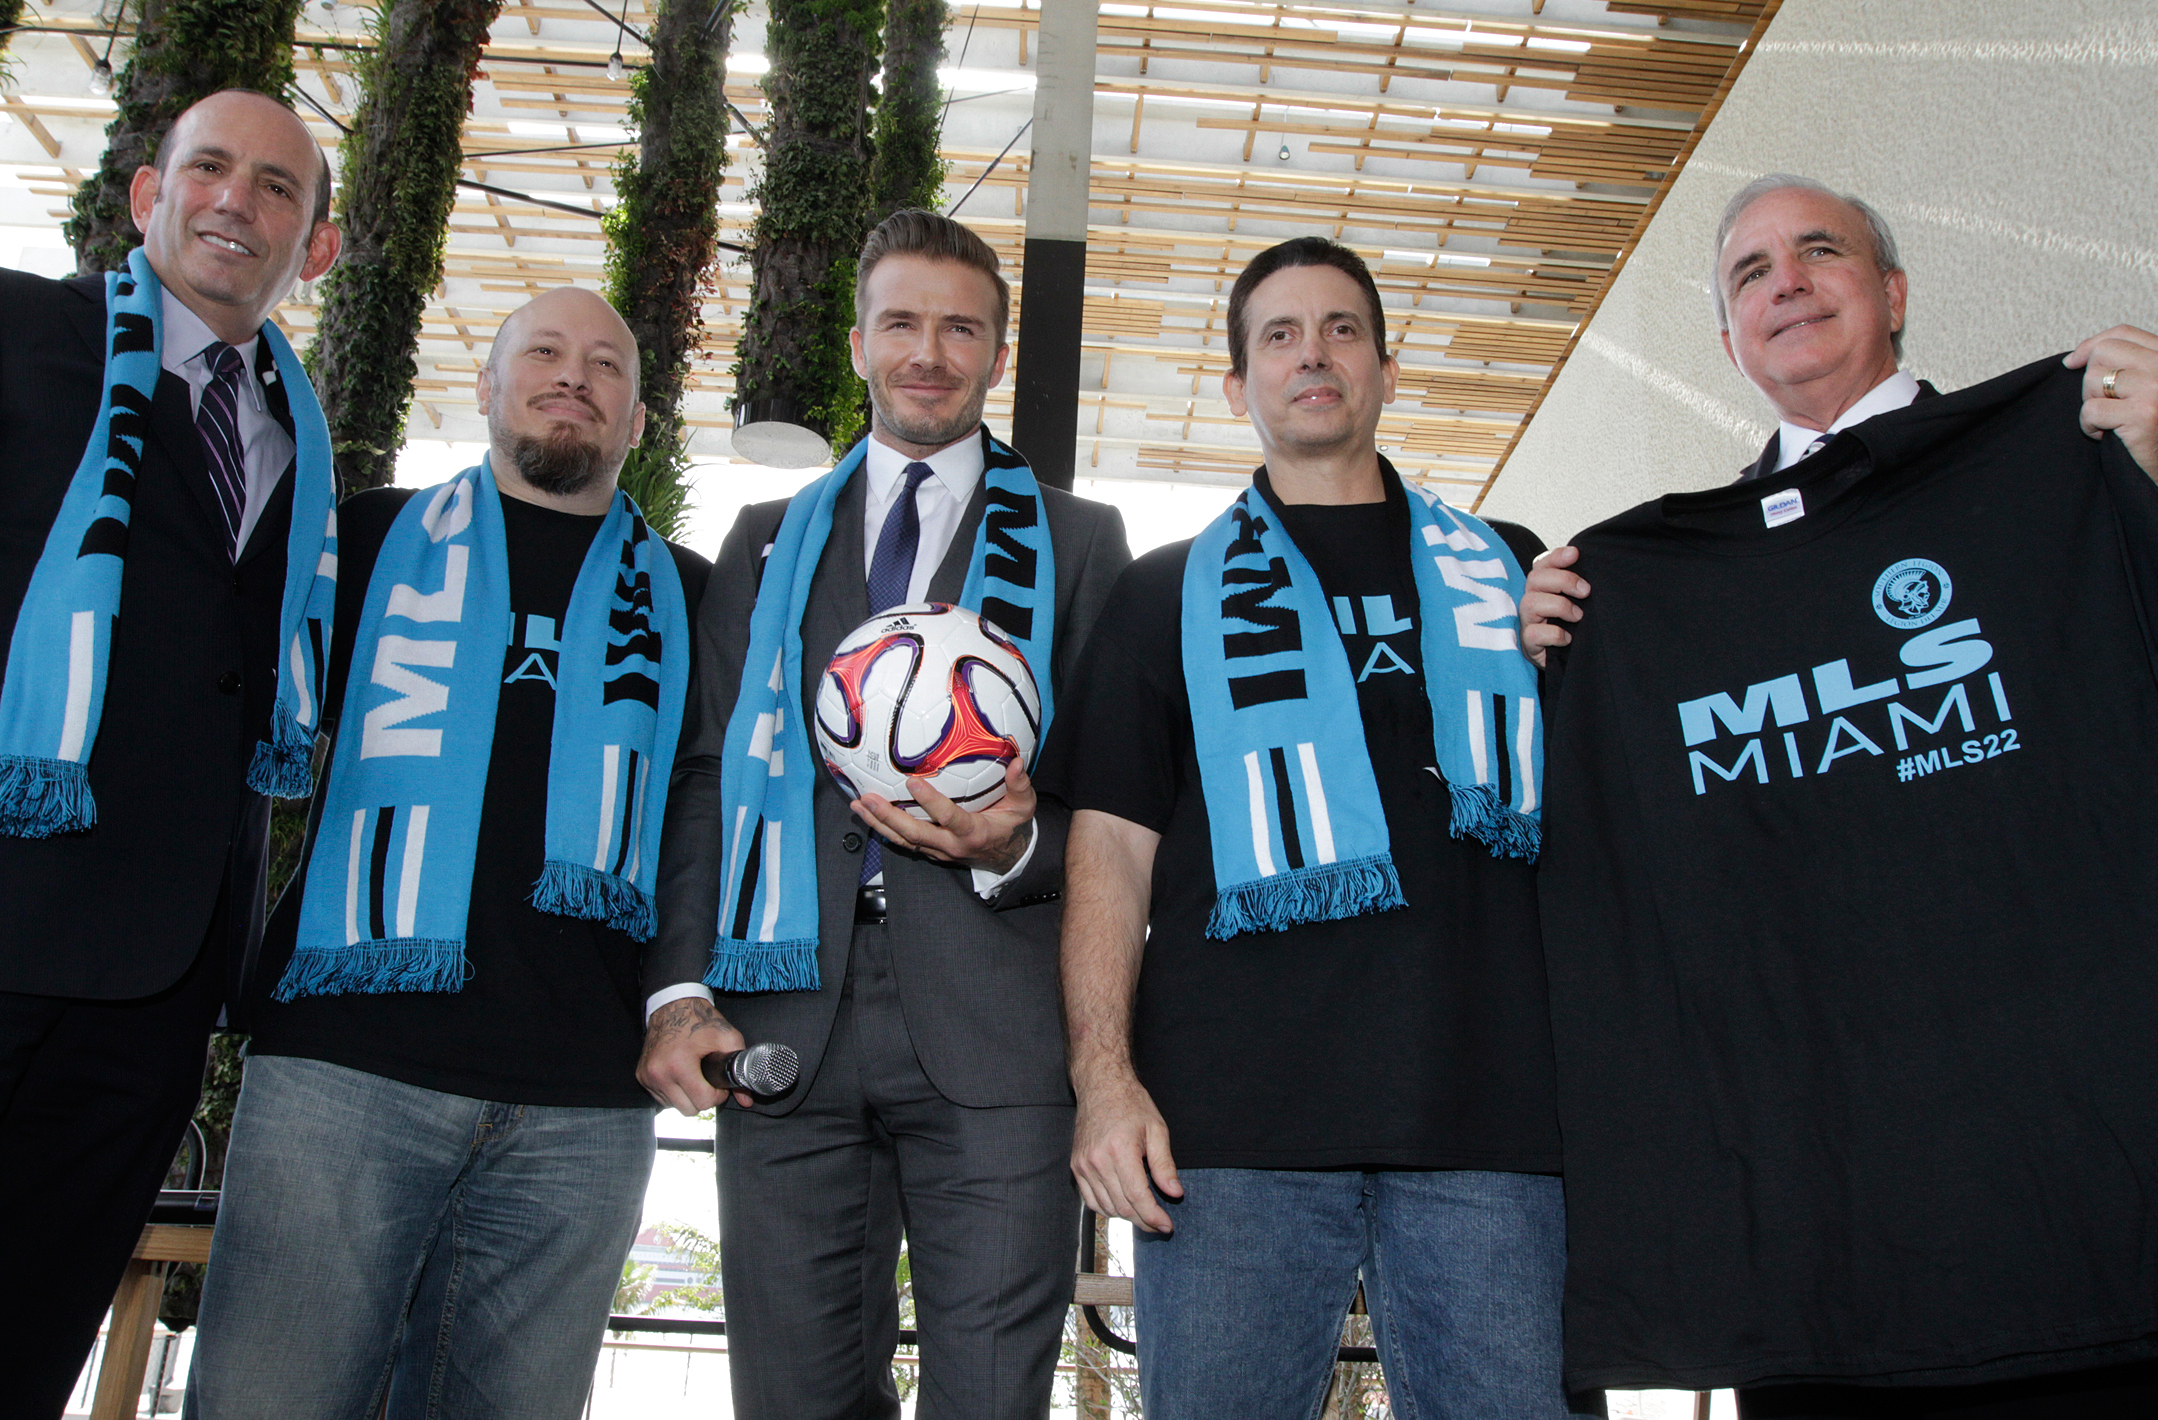 David Beckham poses for photos after holding a press conference at the Perez Art Museum Miami, in Miami, Florida on February 5, 2014 to announced his plan to buy a US team to play Major League Soccer and bring it to Miami.